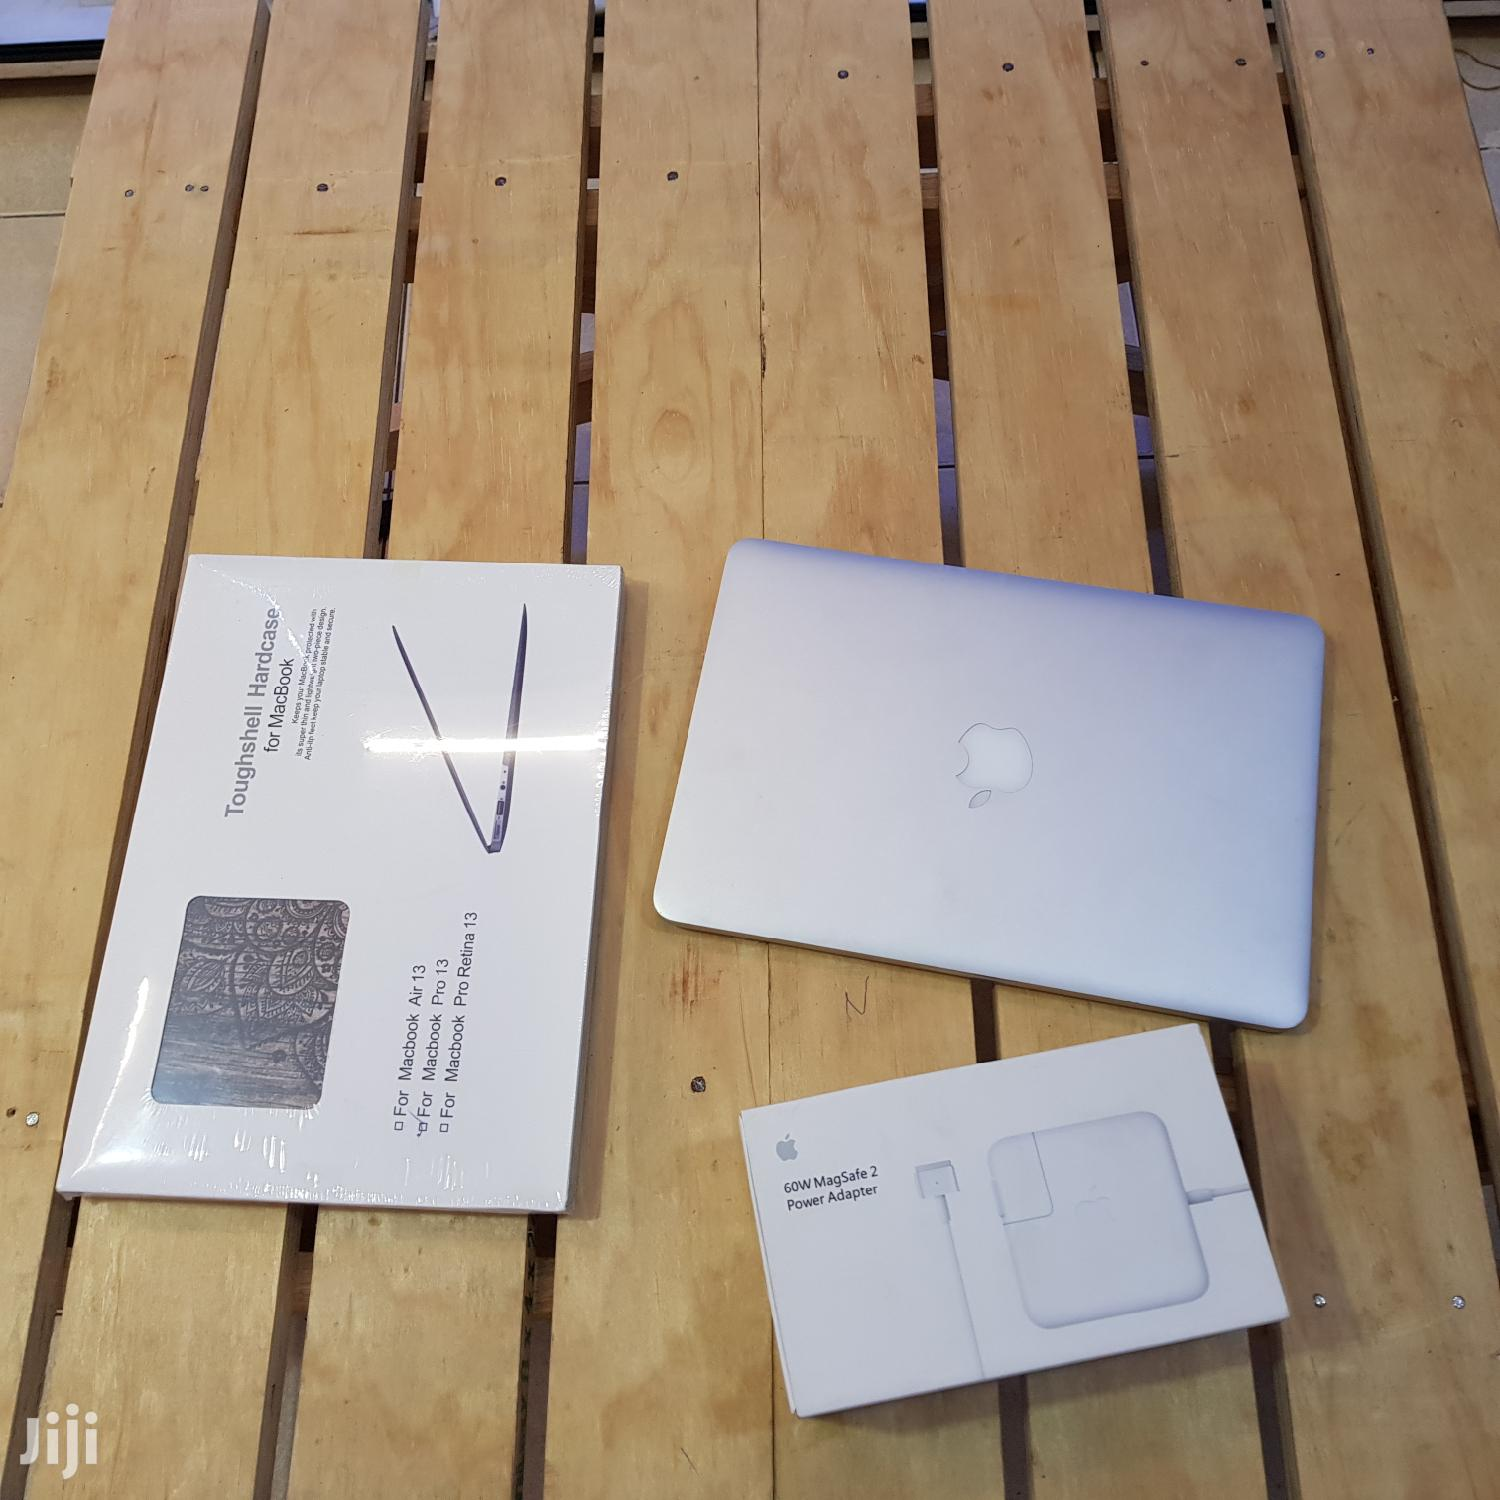 Apple Macbook Pro 13 Inches 128 GB SSD Core I5 8 GB RAM | Laptops & Computers for sale in Kampala, Central Region, Uganda